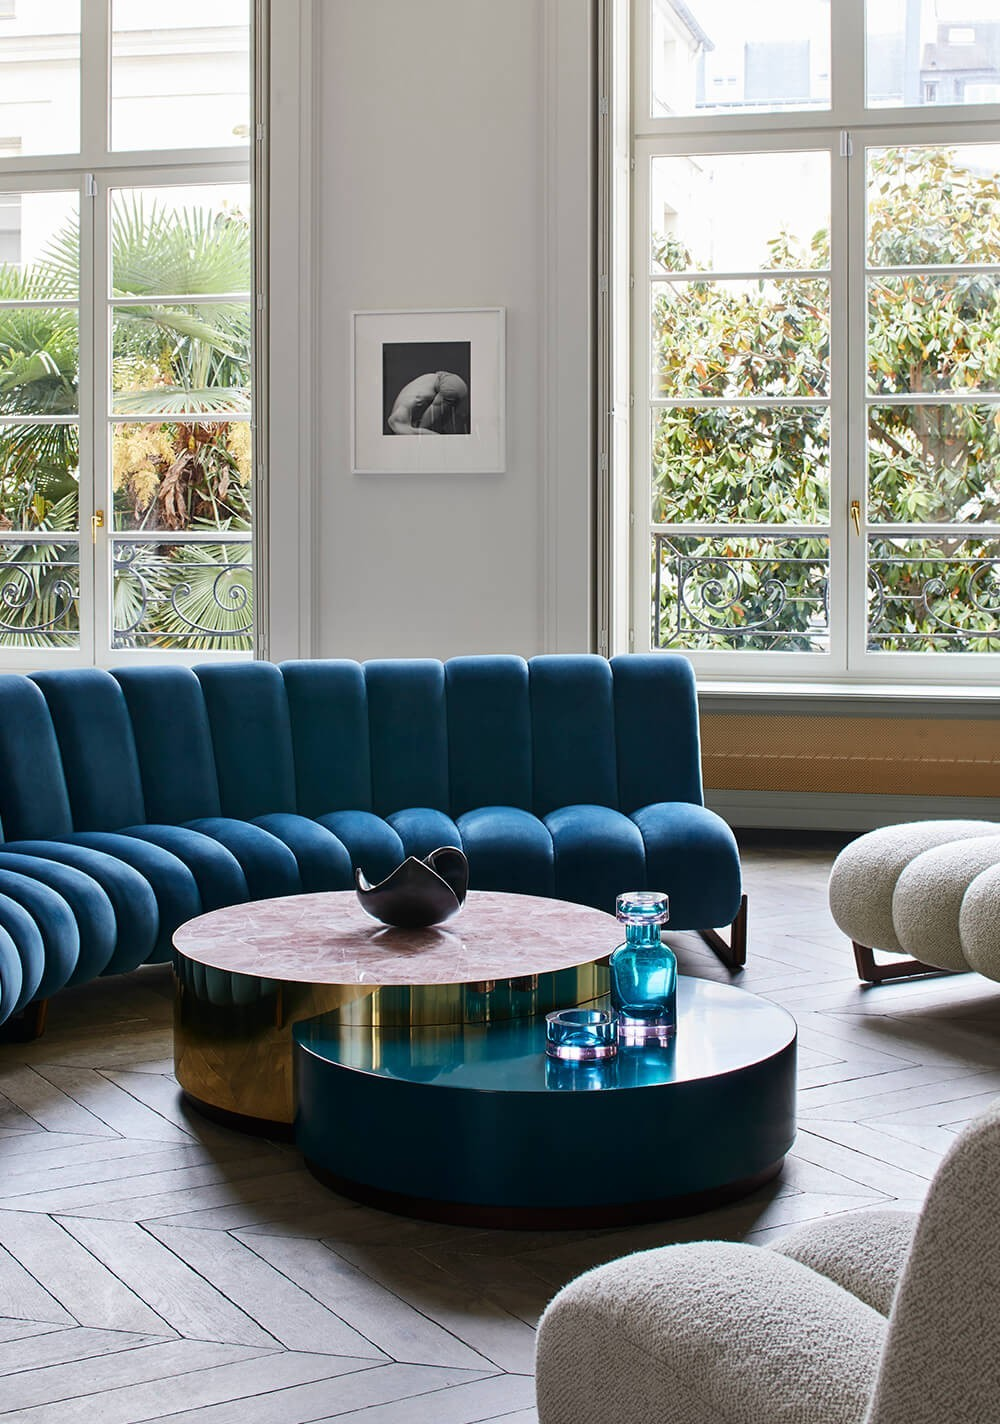 Humbert & Poyet Create Exuberant Interiors with Understated Elegance 8 exuberant interiors Humbert & Poyet Create Exuberant Interiors with Understated Elegance Humbert Poyet Create Exuberant Interiors with Understated Elegance 8